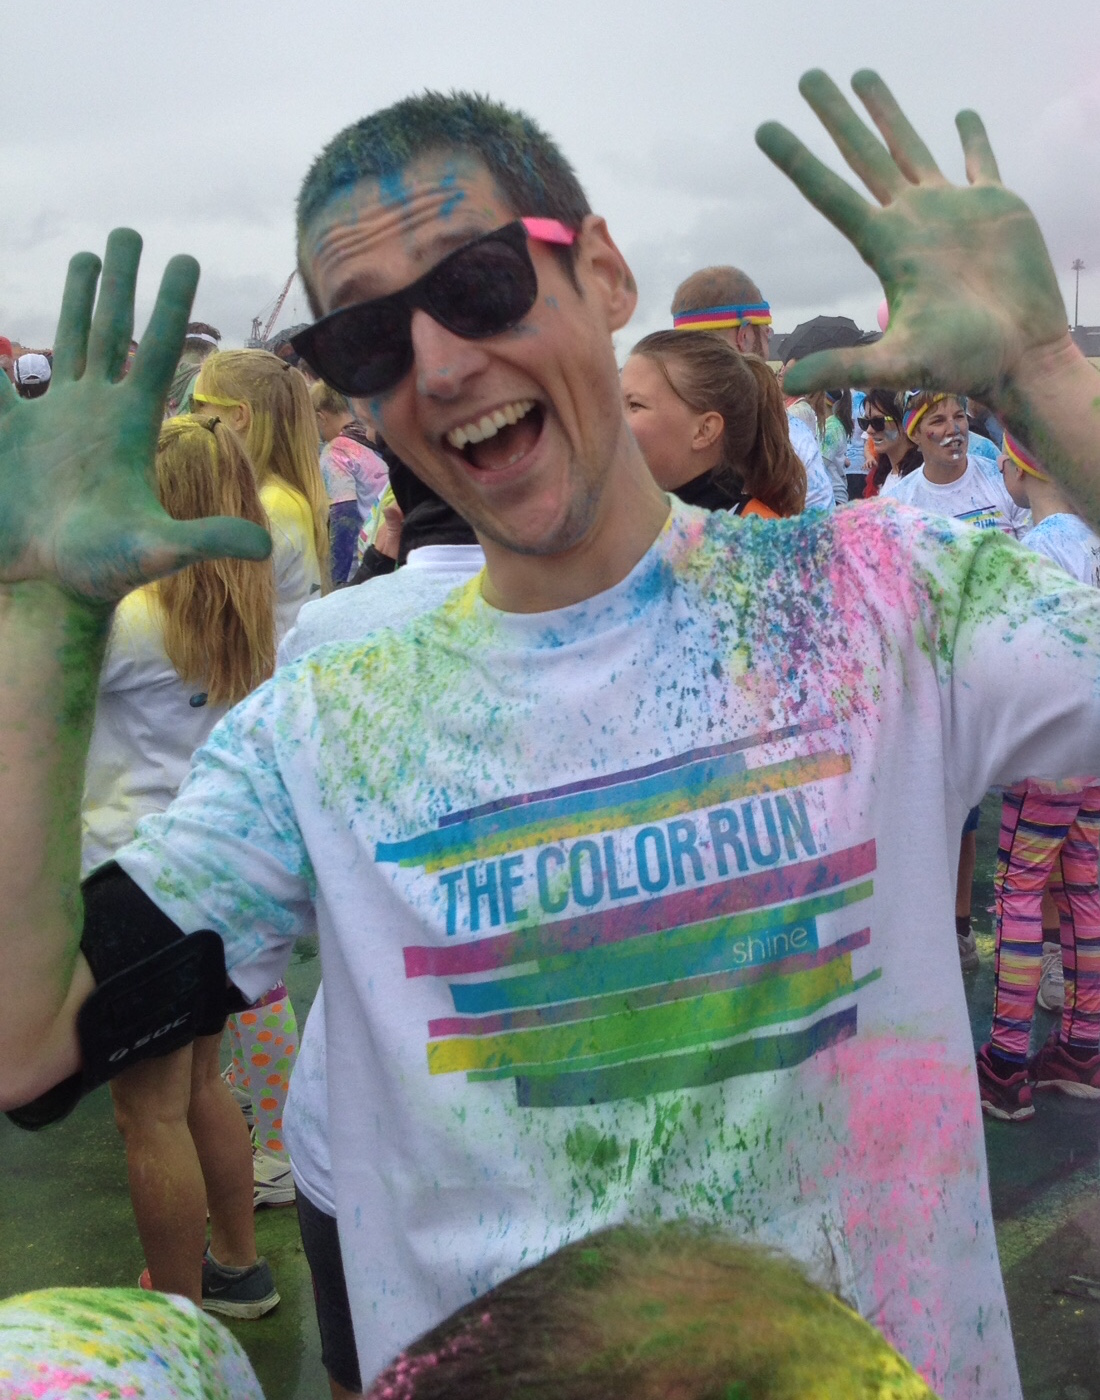 At the start of the Color run